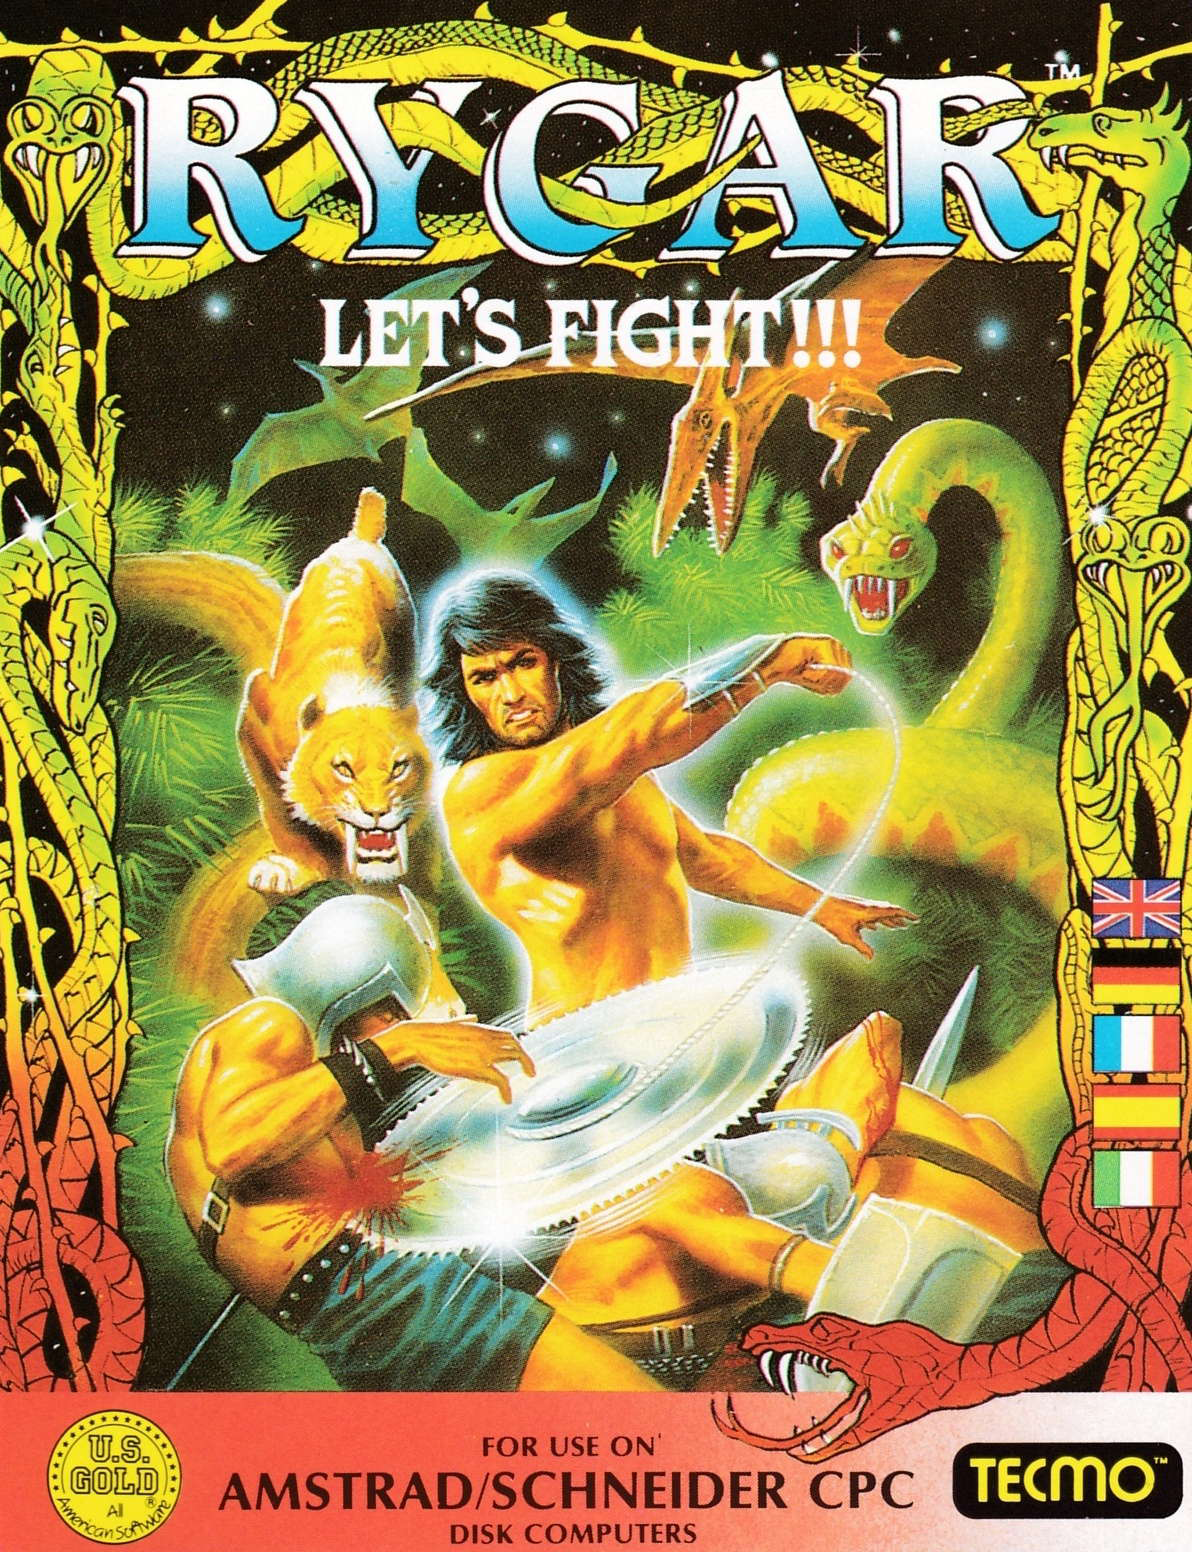 cover of the Amstrad CPC game Rygar  by GameBase CPC